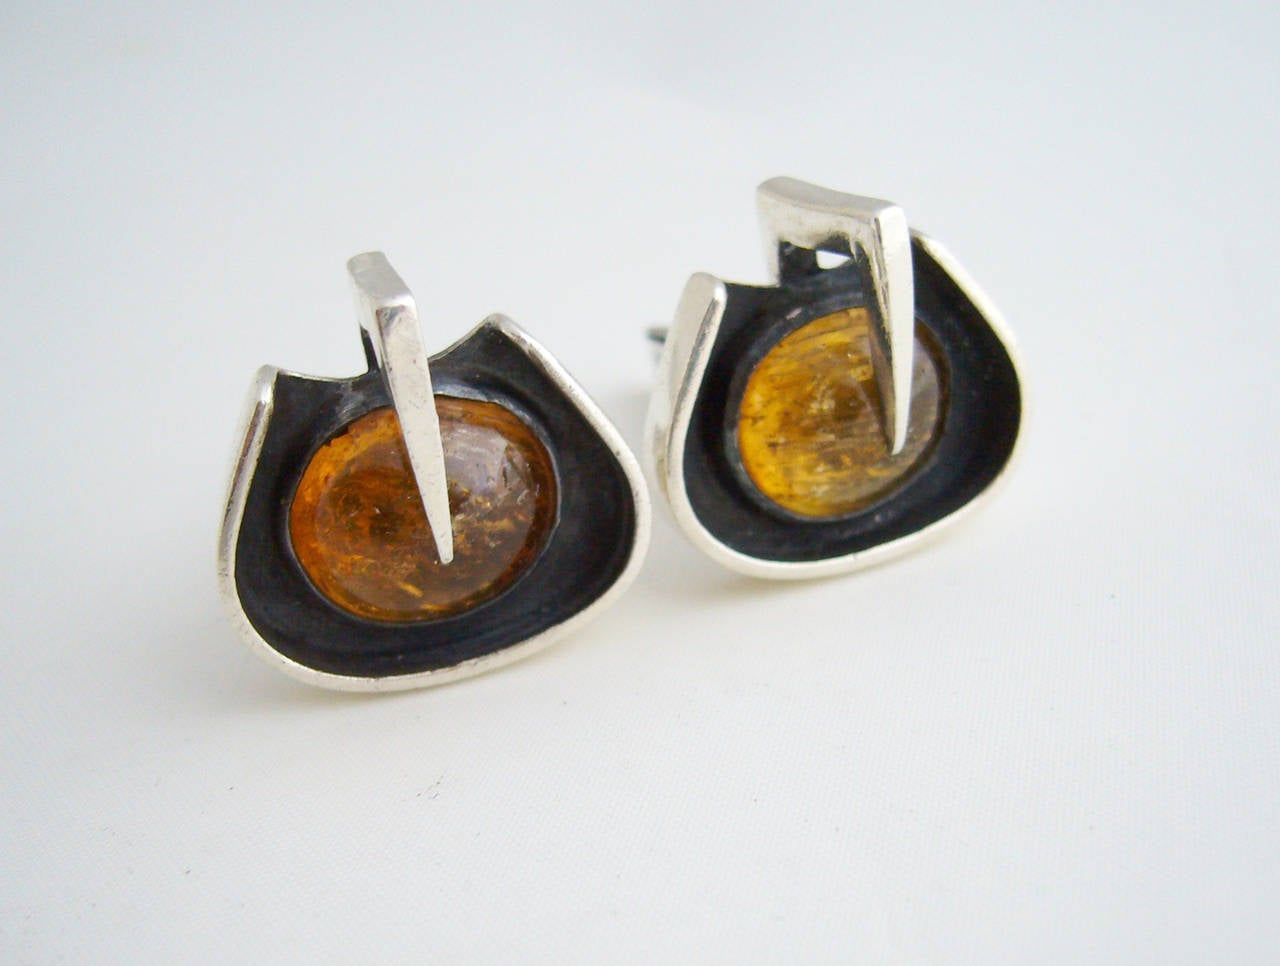 Modernist Margaret De Patta Amber Sterling Silver Cufflinks For Sale